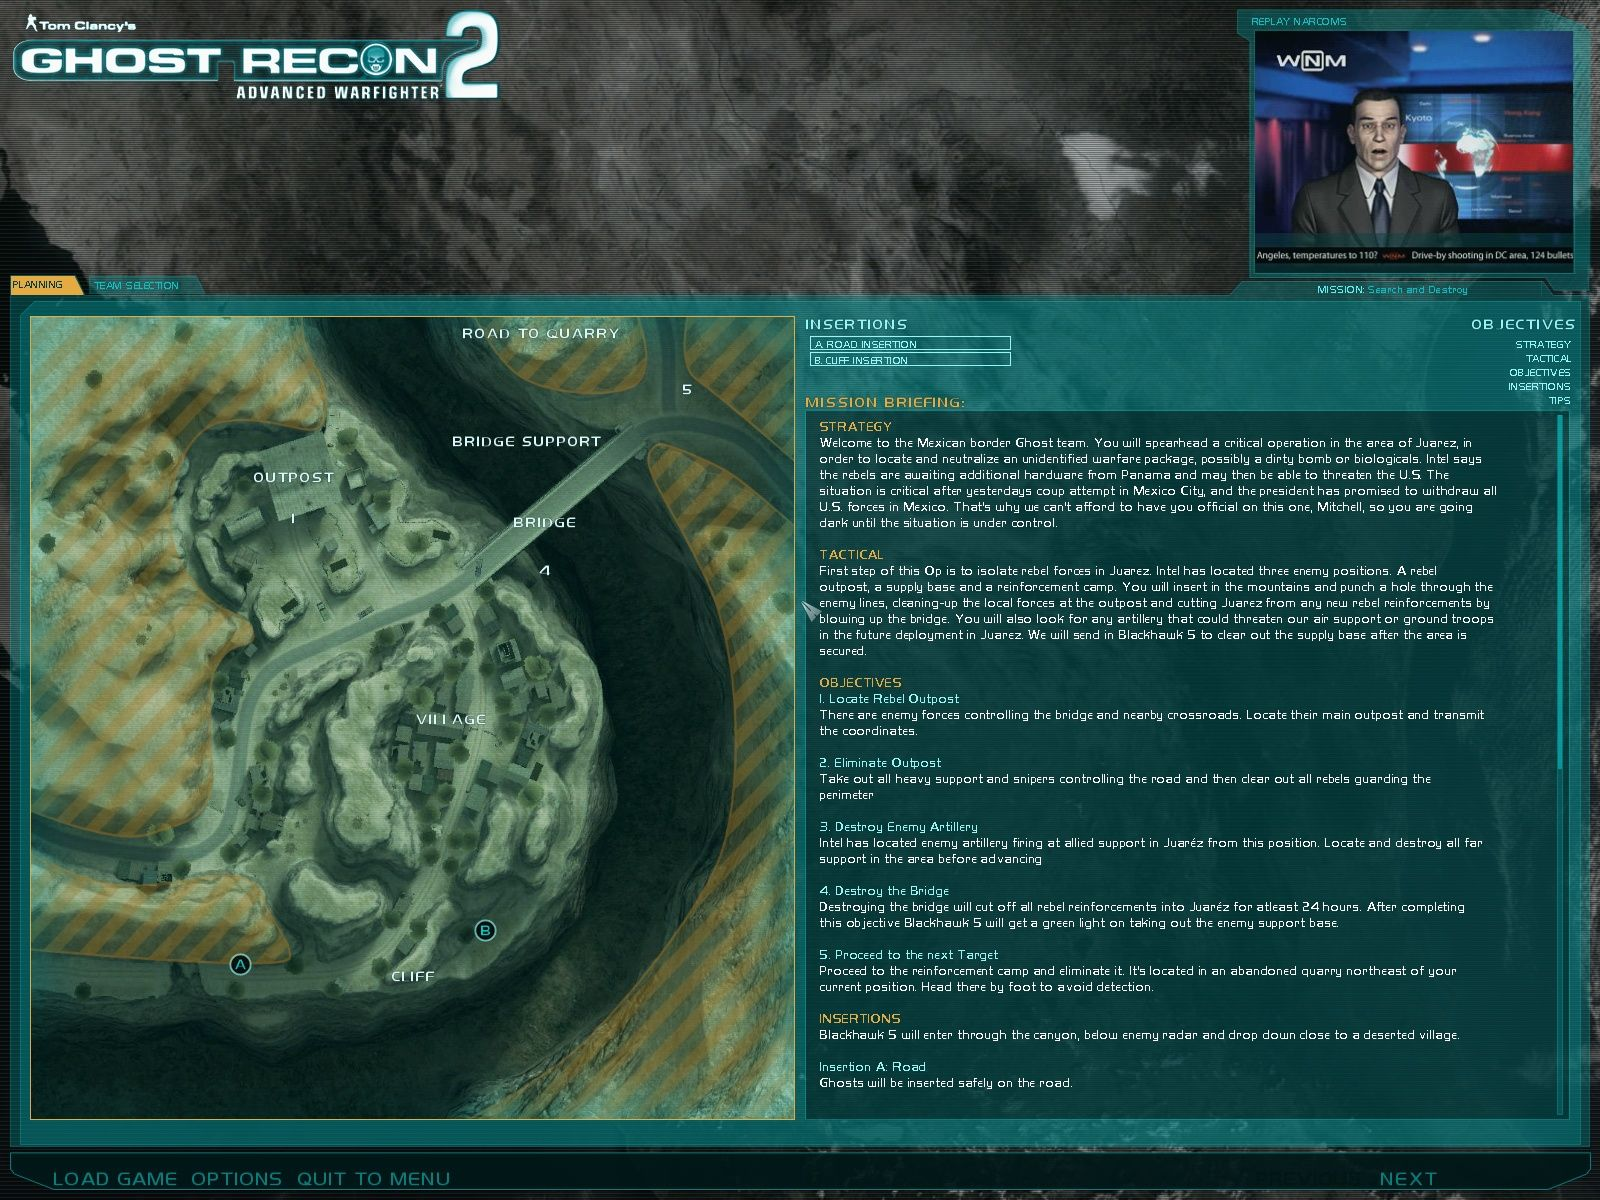 Tom Clancy's Ghost Recon: Advanced Warfighter 2 Windows Mission briefing